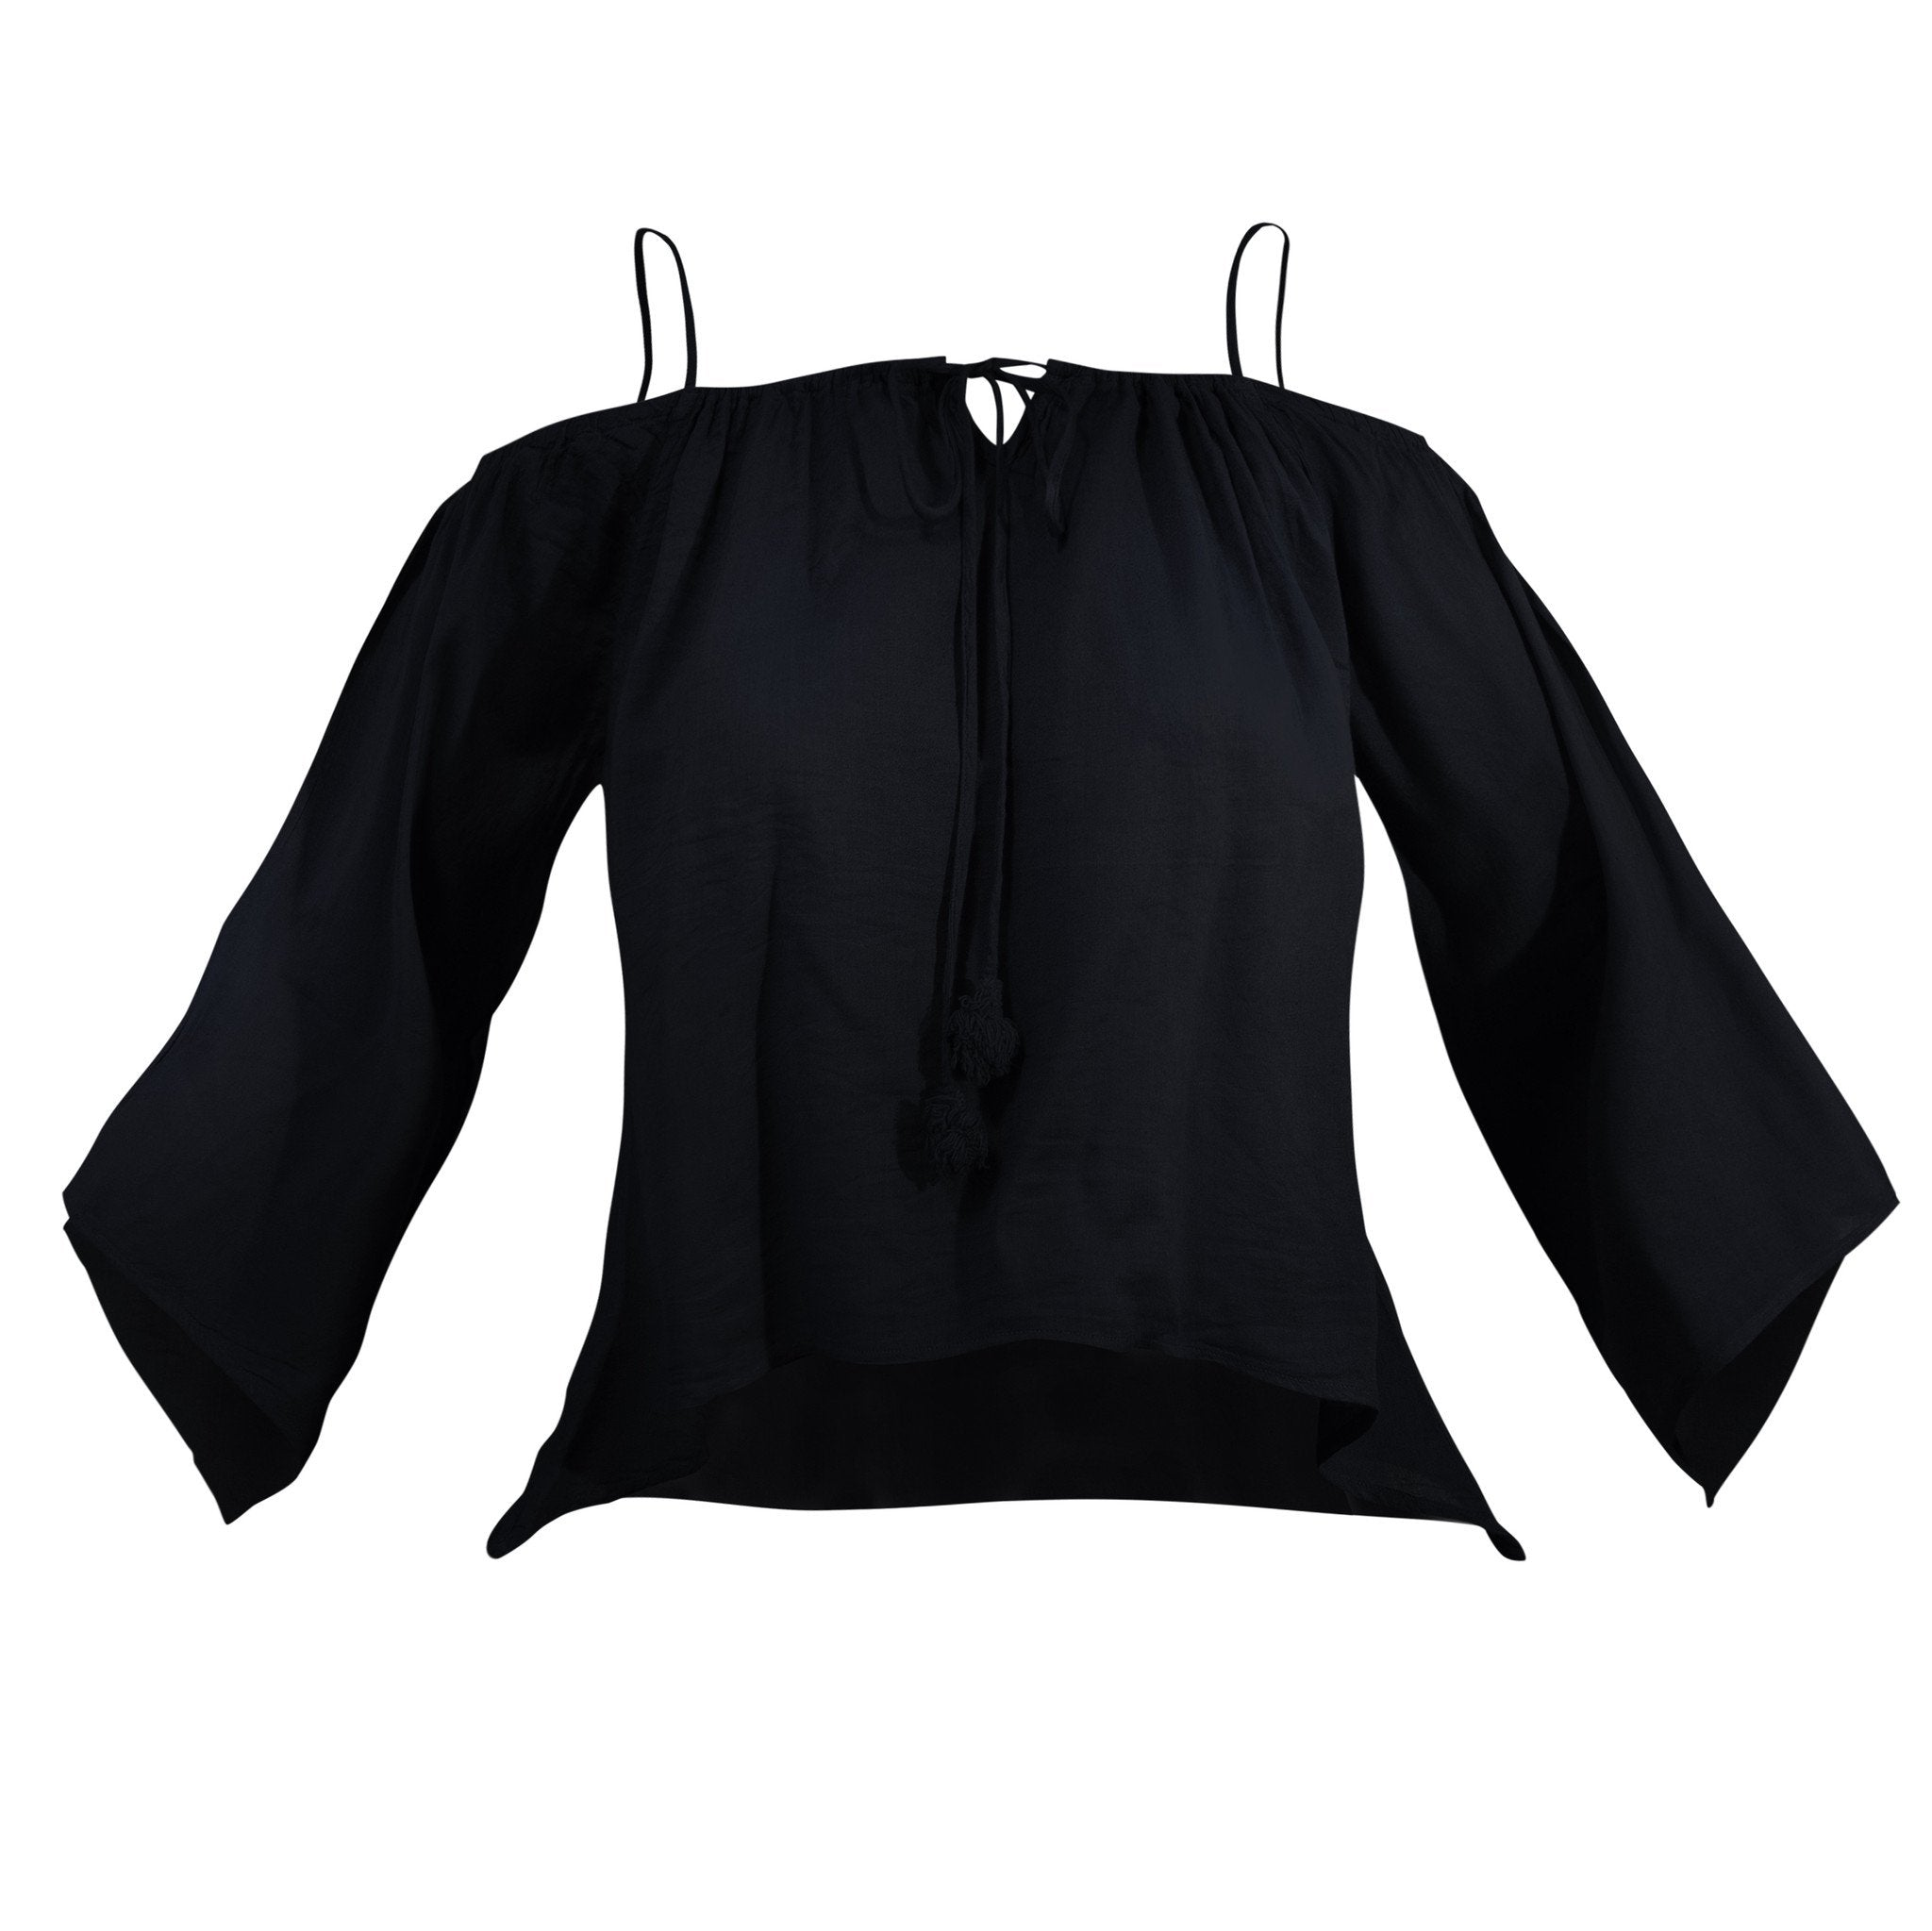 Cotton Top Open Shoulder Elbow long Sleeve - CCCollections